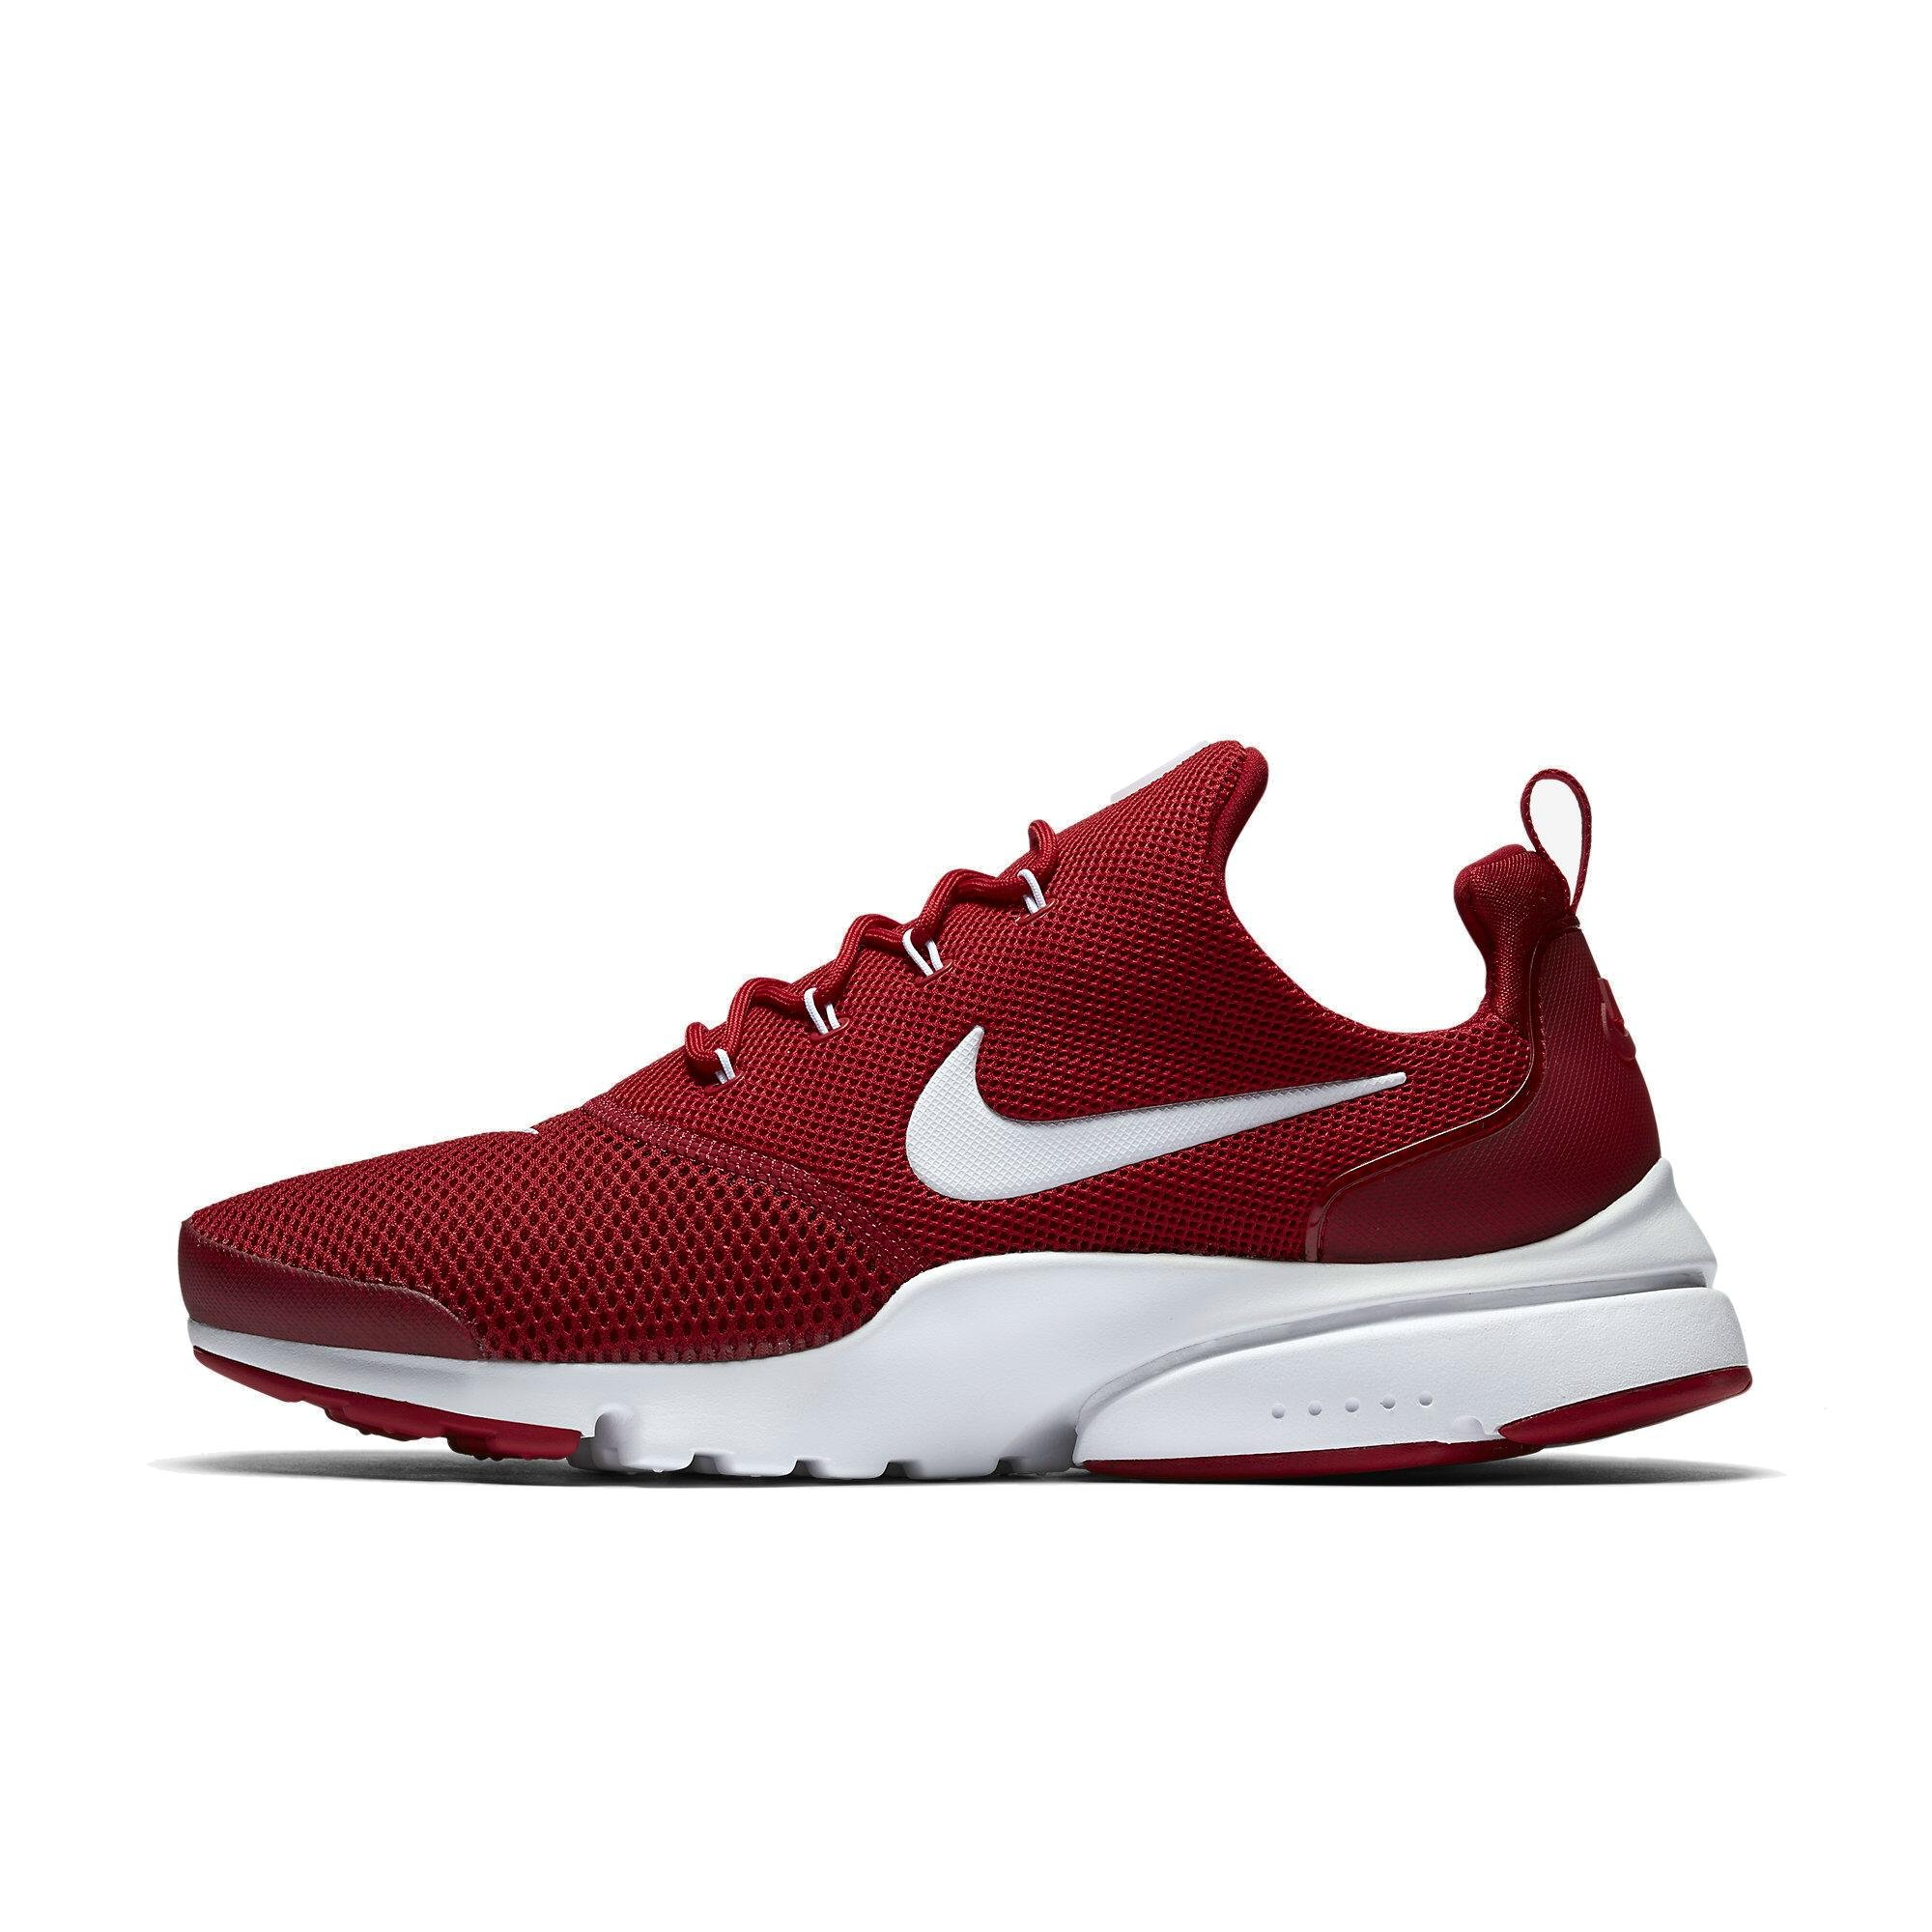 best service 44a5d f76c5 NIKE Presto Fly Gym RED White 908019 600 Mens Running